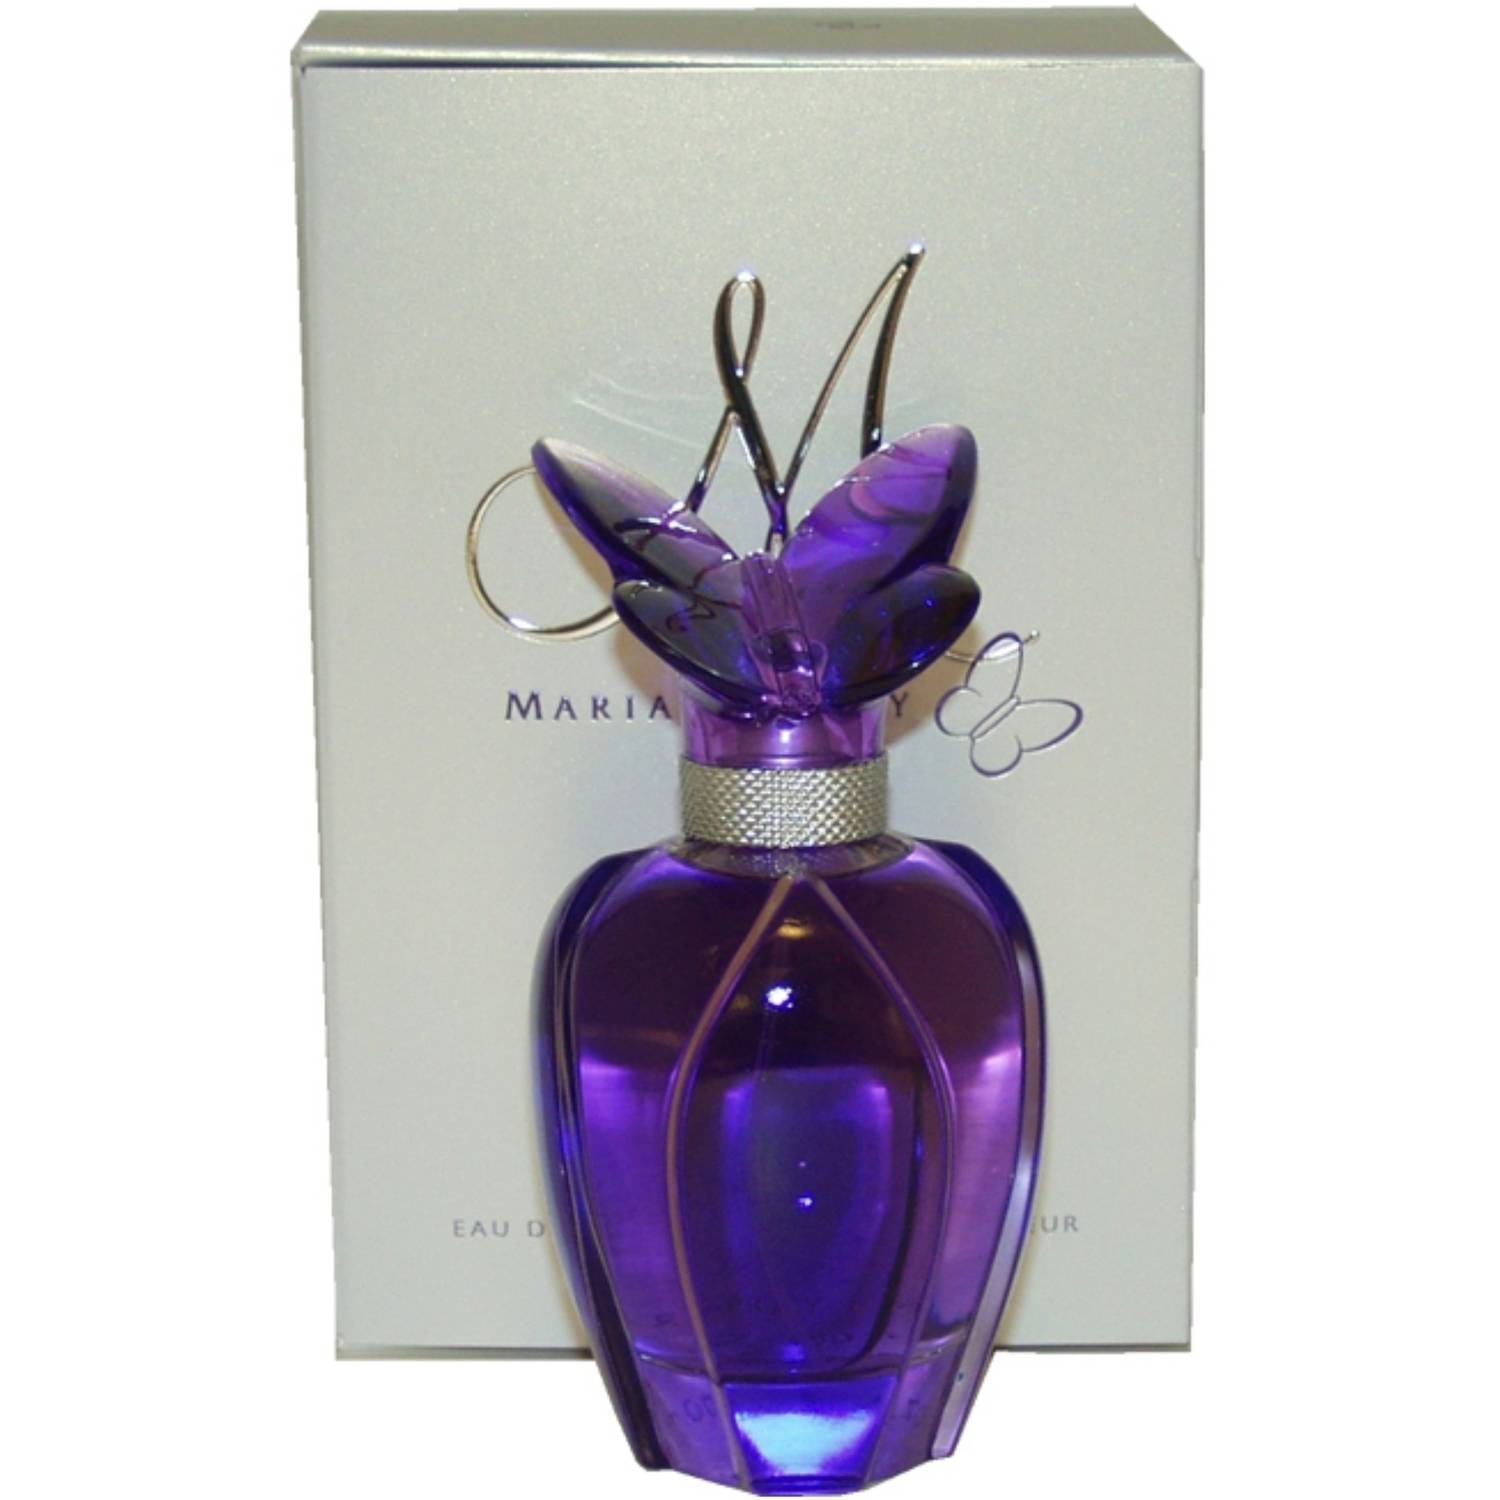 Mariah Carey M Eau de Parfum Spray, 3.3 fl oz